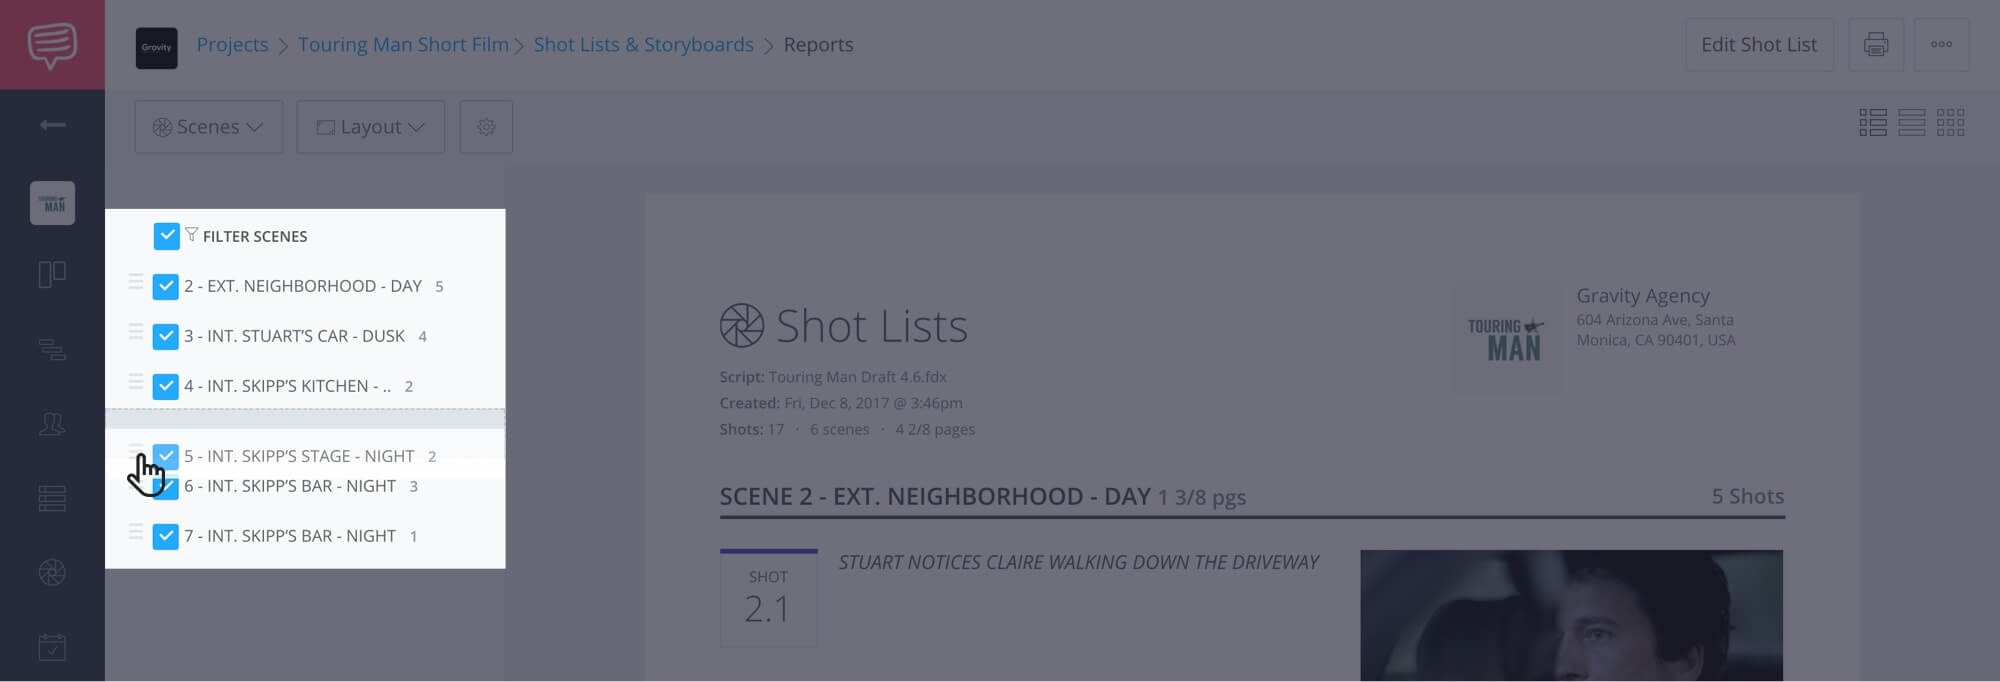 How to Create a Shot List with StudioBinder - Shot List Creator Template - 22